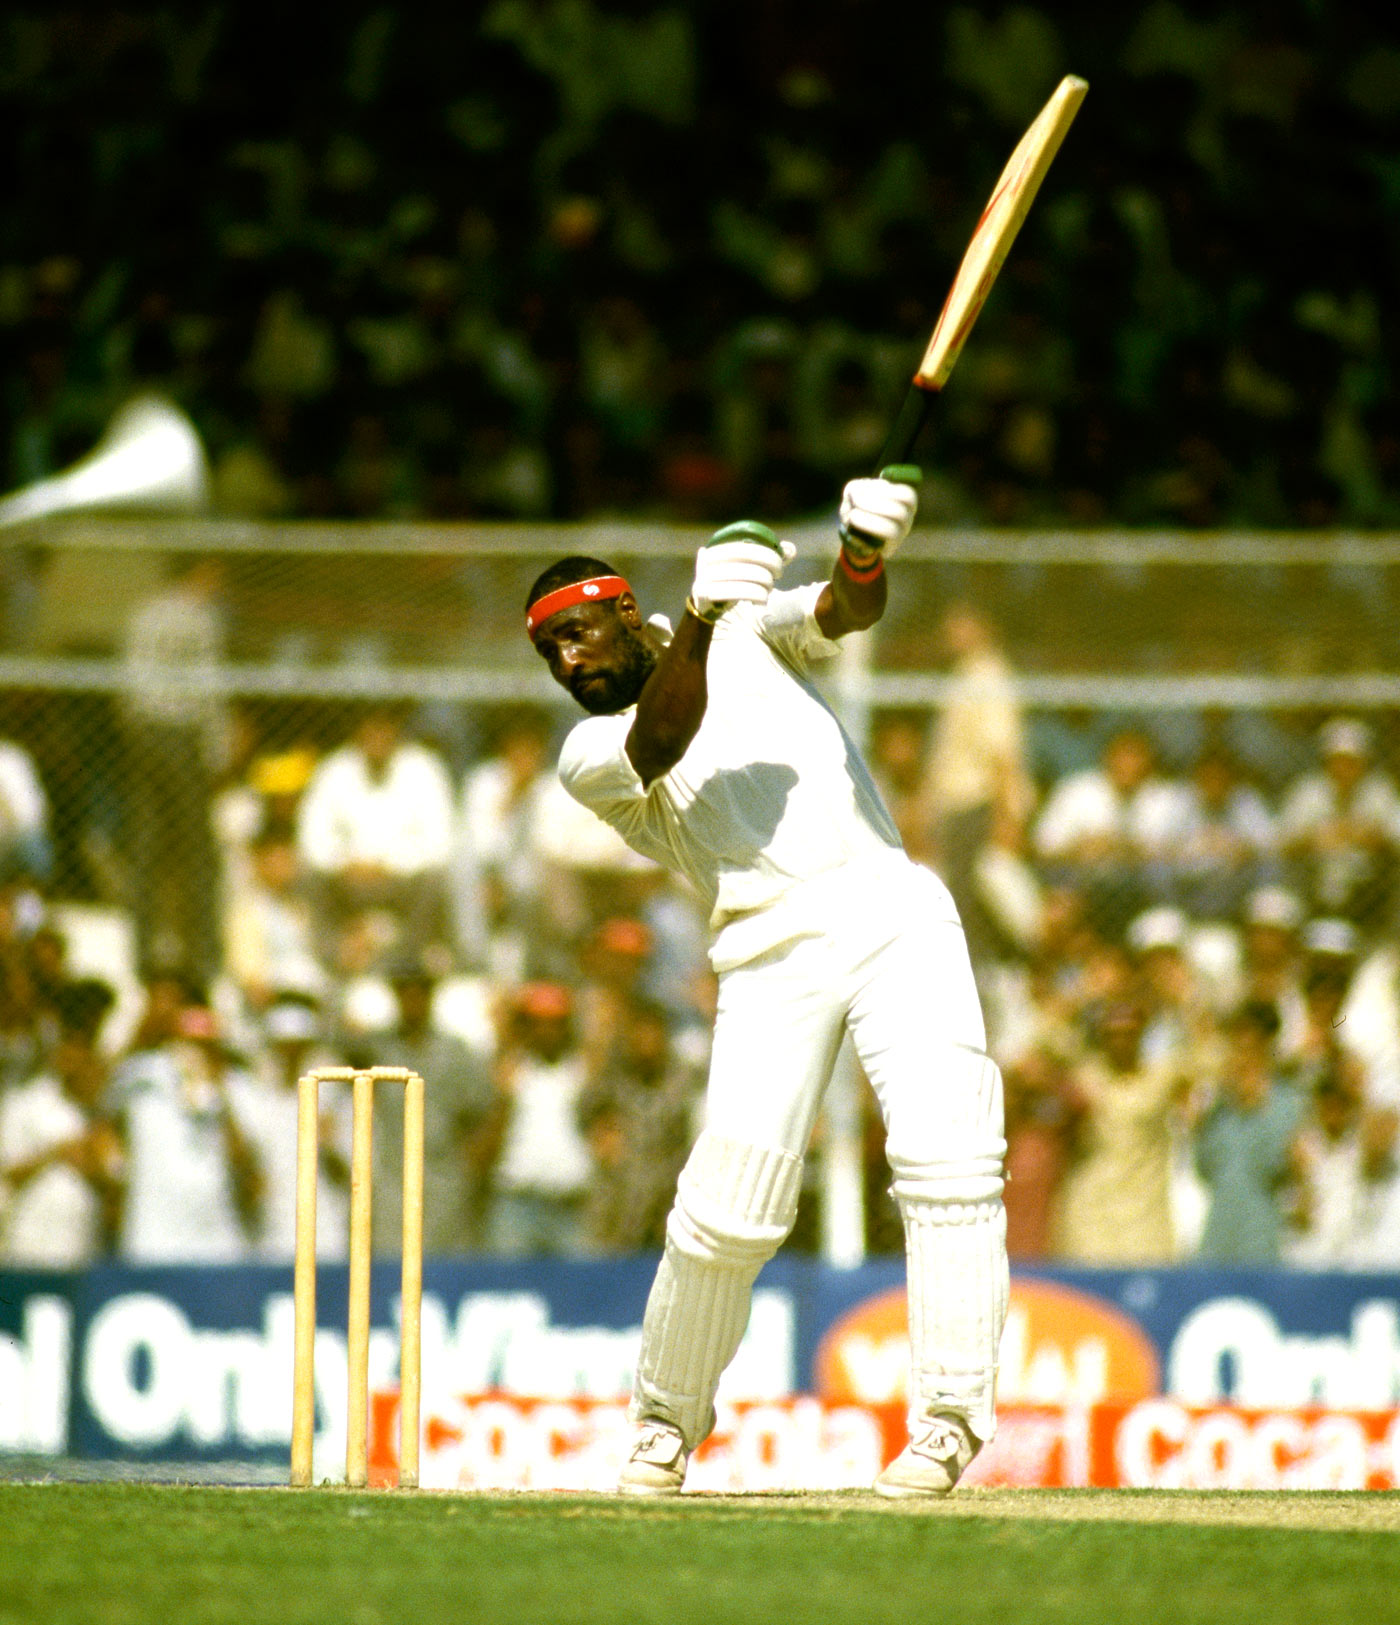 Mind the gap: to Richards, batsmanship was all about placing the ball between fielders